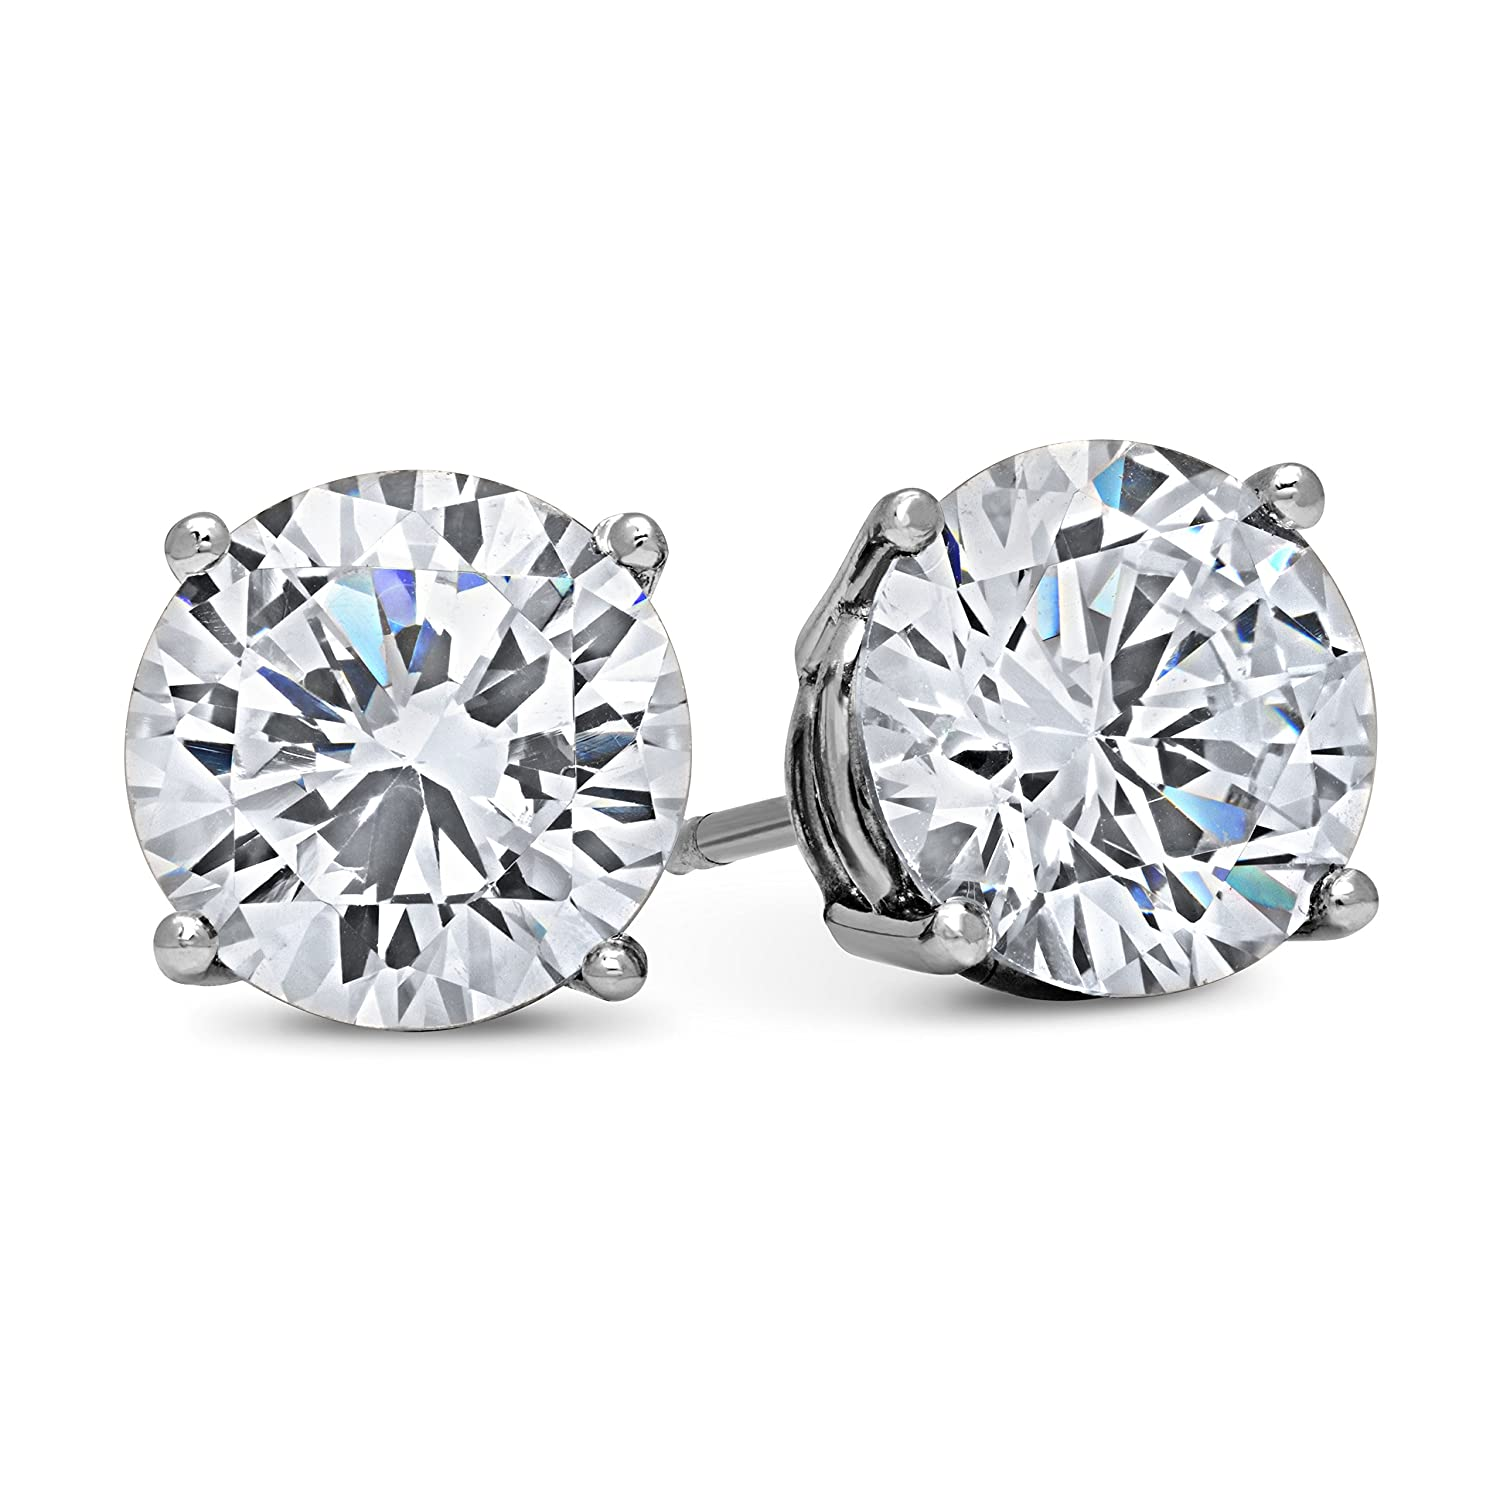 5c5de1b6b Amazon.com: DTLA 14k White Gold Solid Cubic Zirconia Stud Earrings (0.5  carats): Jewelry